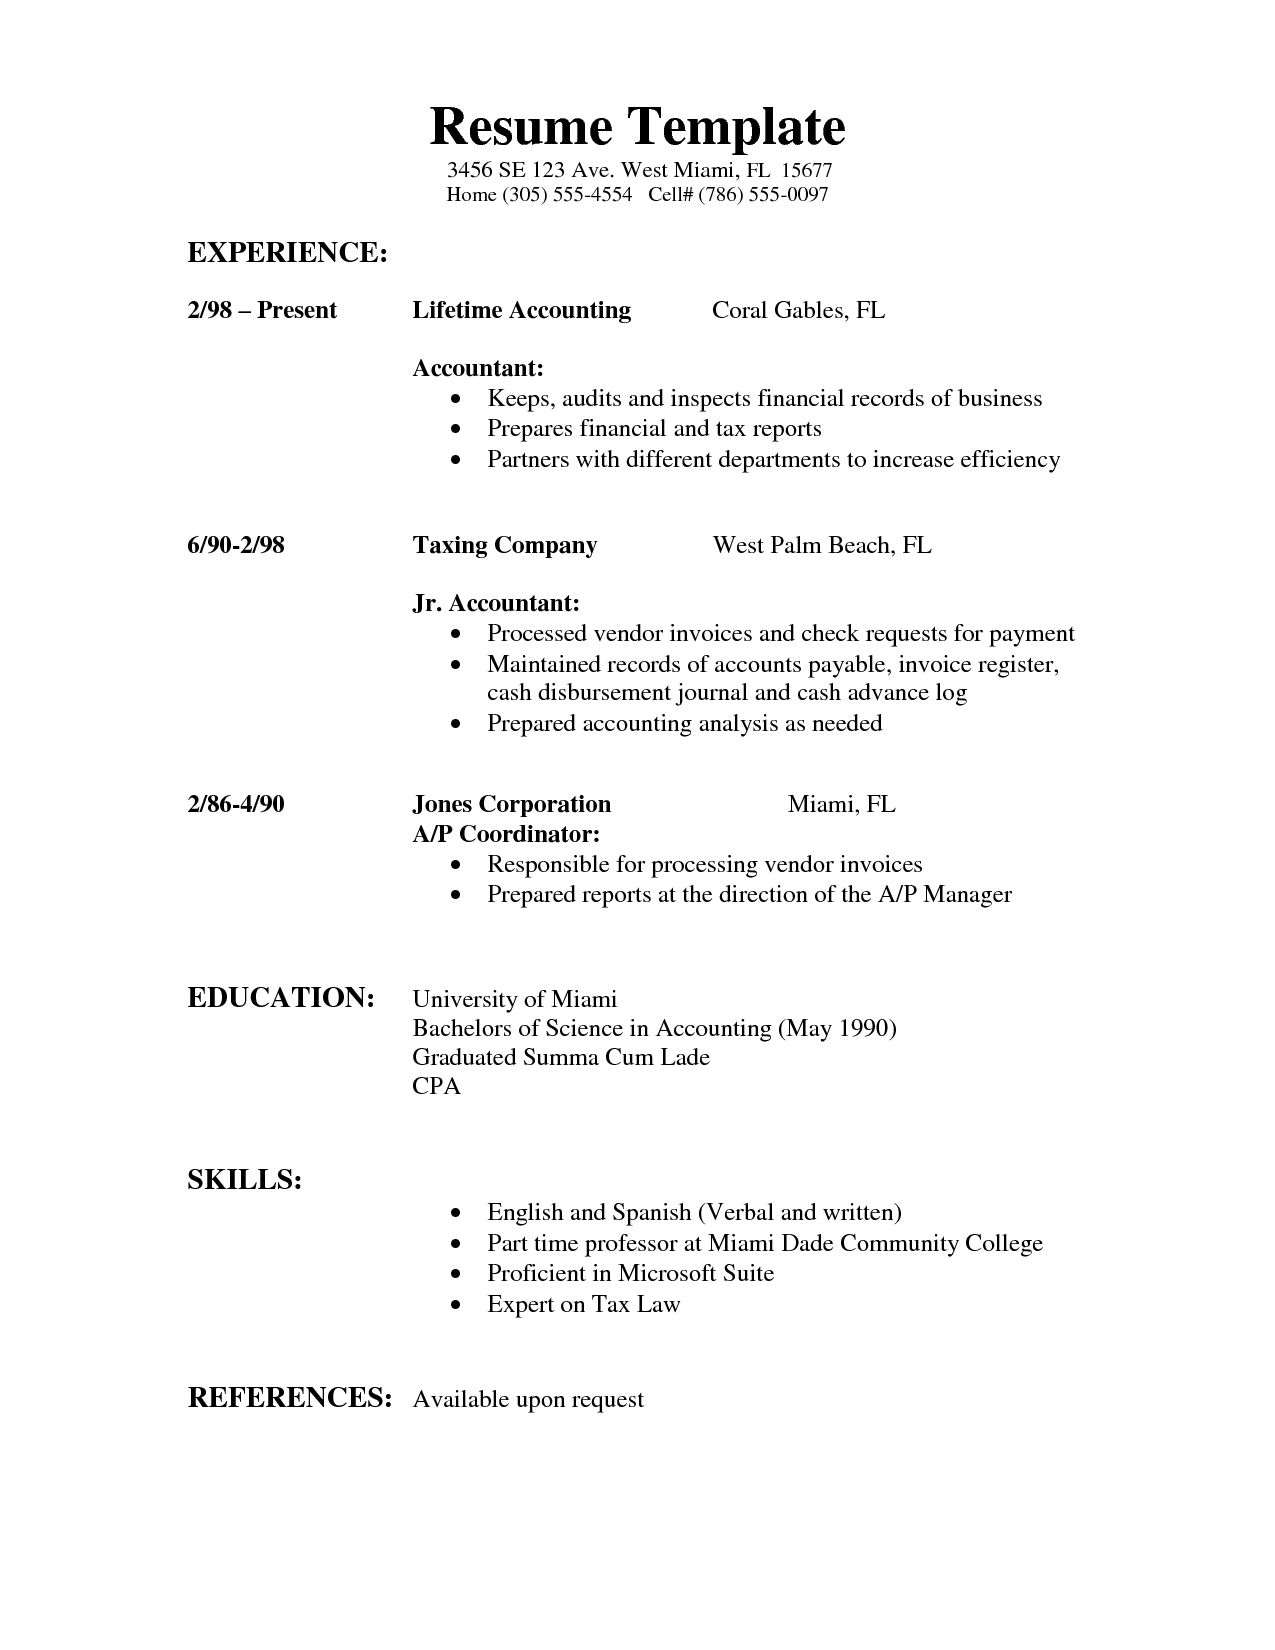 Simple Format For Resume L Andr Resume Examples 3 Letter And Resume